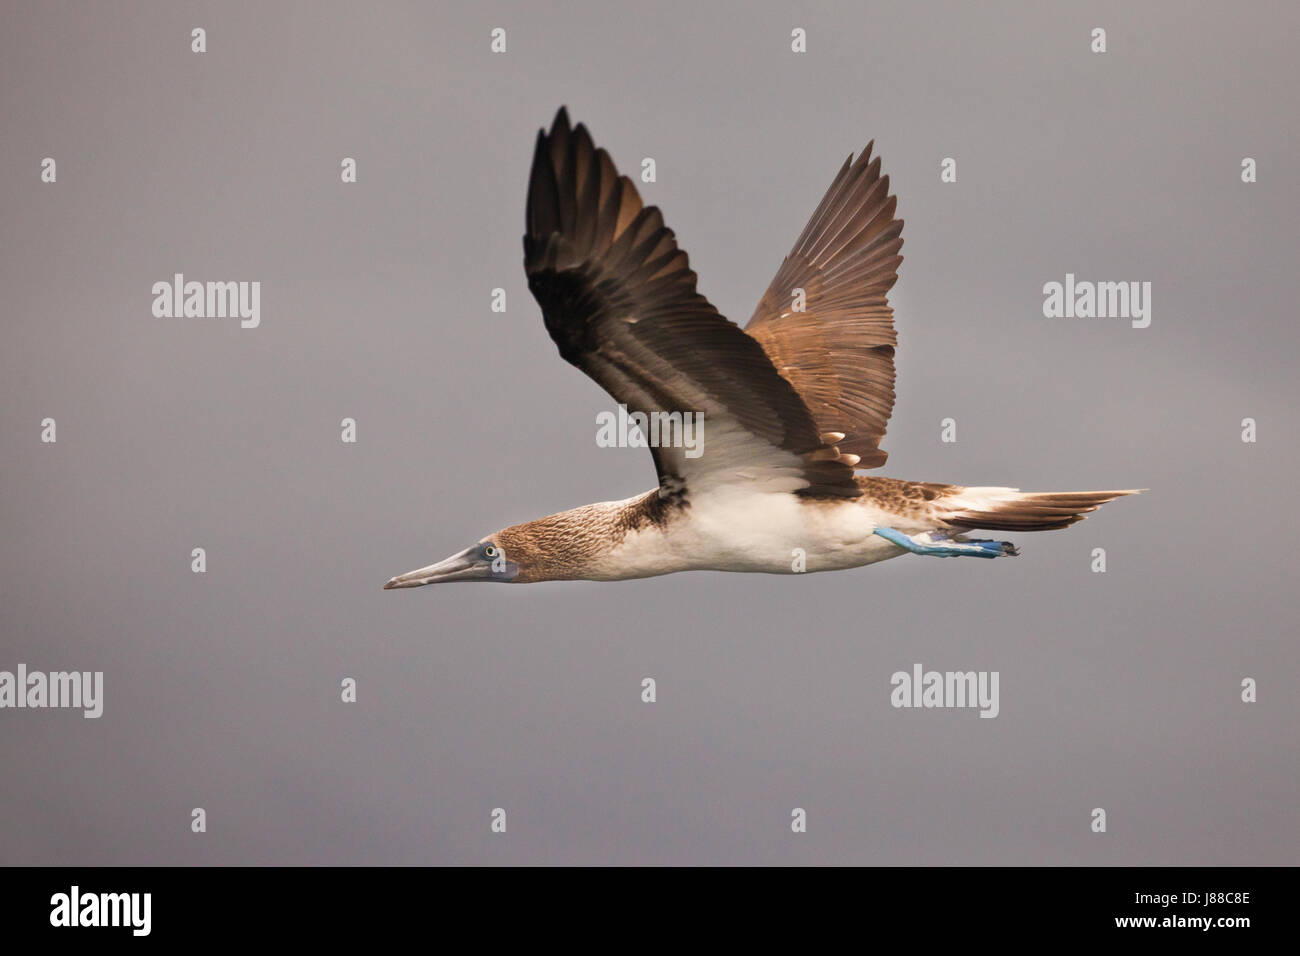 Blue-footed Booby in flight at the coast of Isla de Coiba national park, Pacific coast, Veraguas province, Republic Stock Photo